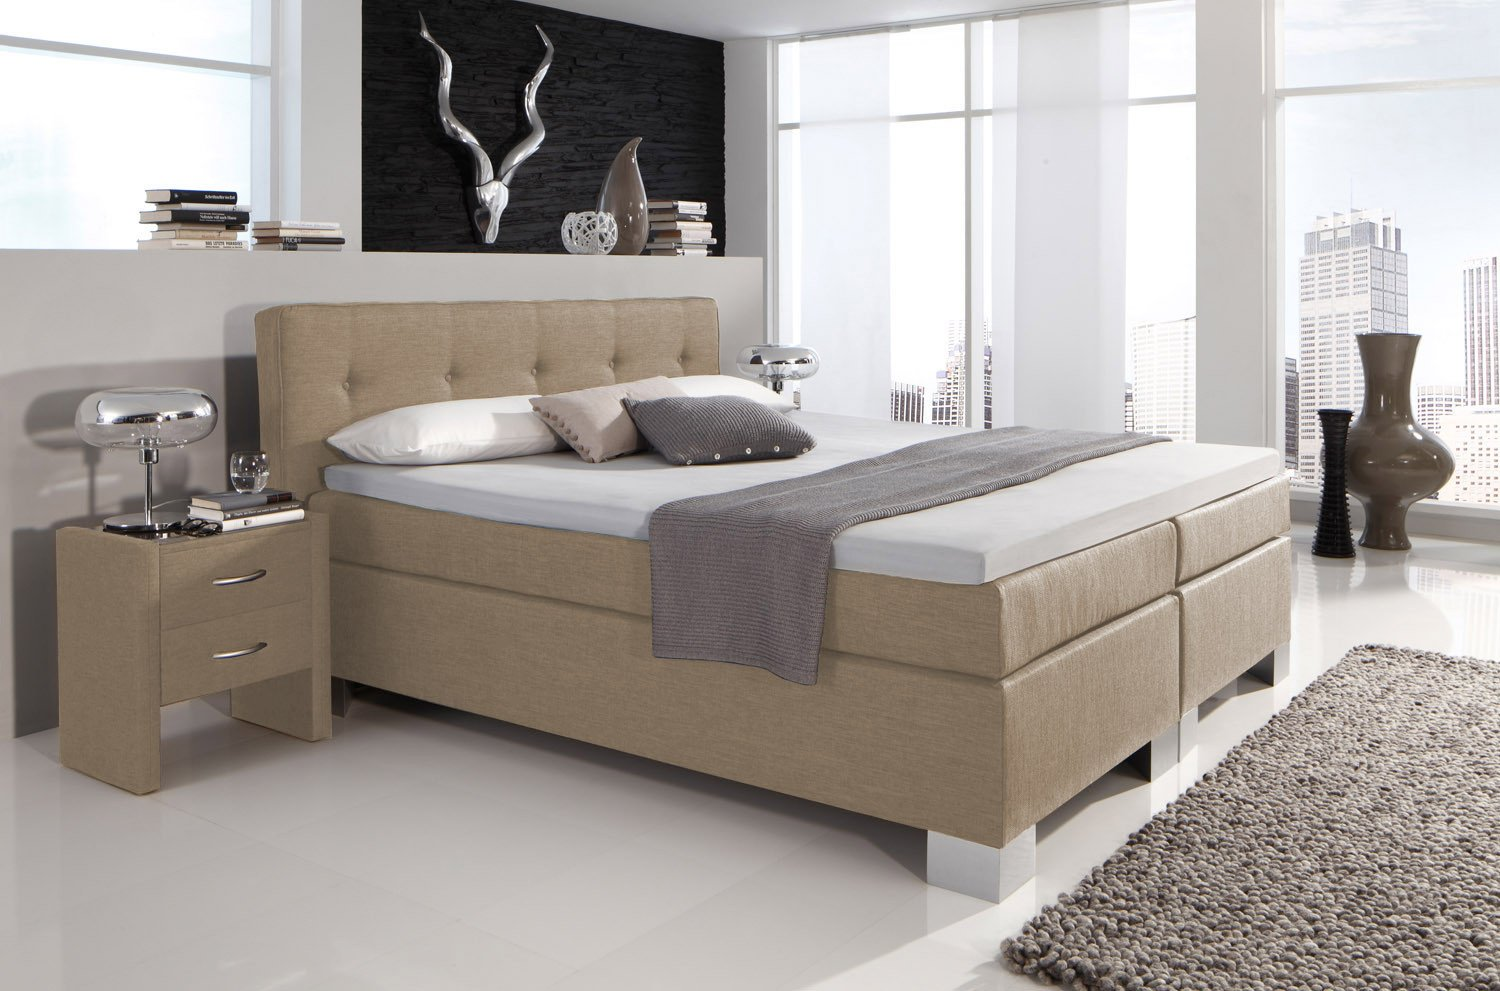 boxspringbett boston von hapo schlafm bel in beige m bel letz ihr online shop. Black Bedroom Furniture Sets. Home Design Ideas